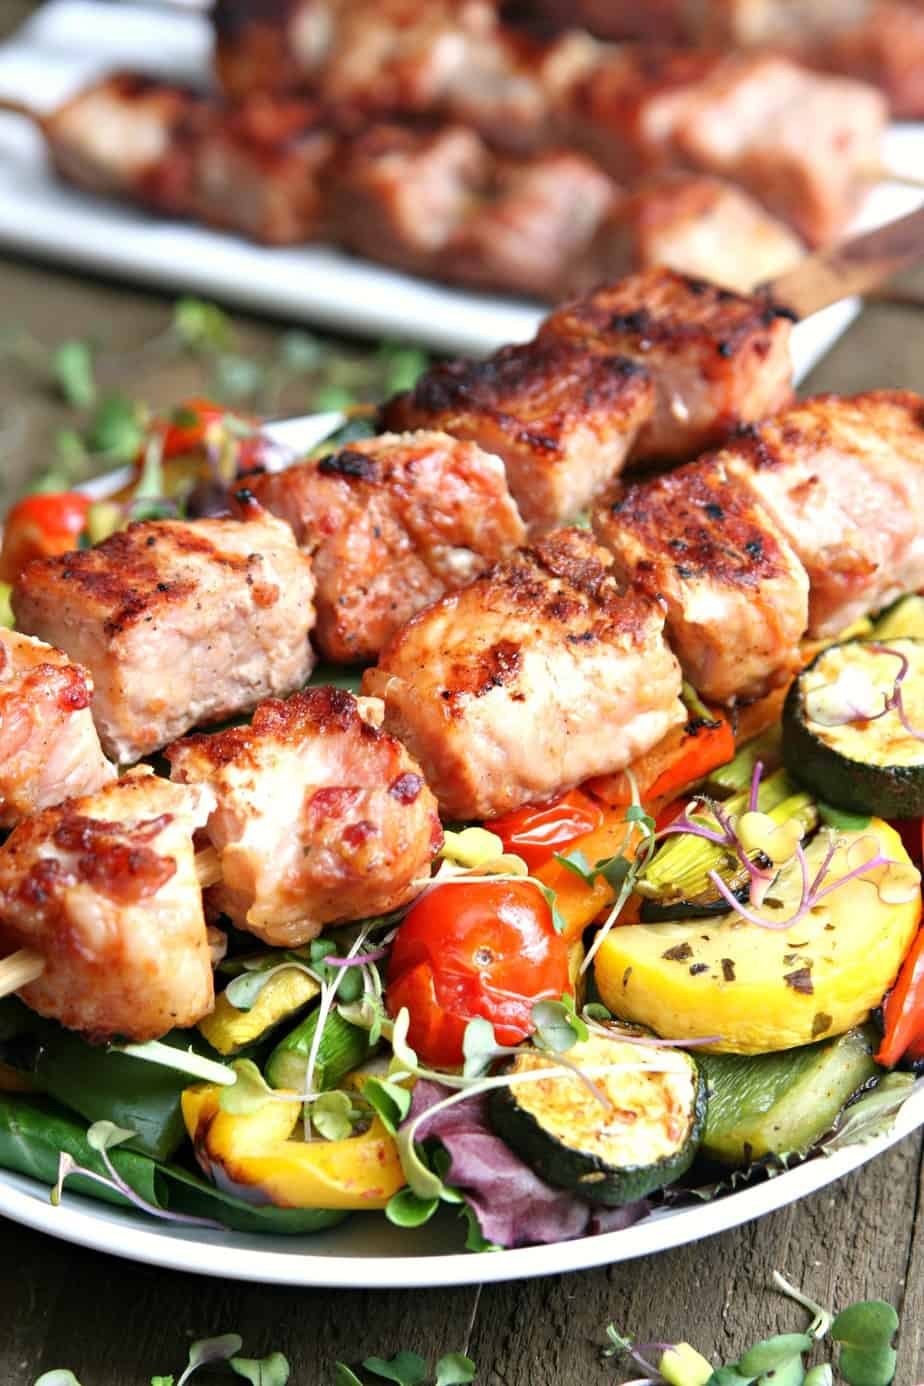 Grilled Vegetable Salad with Pork Kabobs - Happy-Go-Lucky